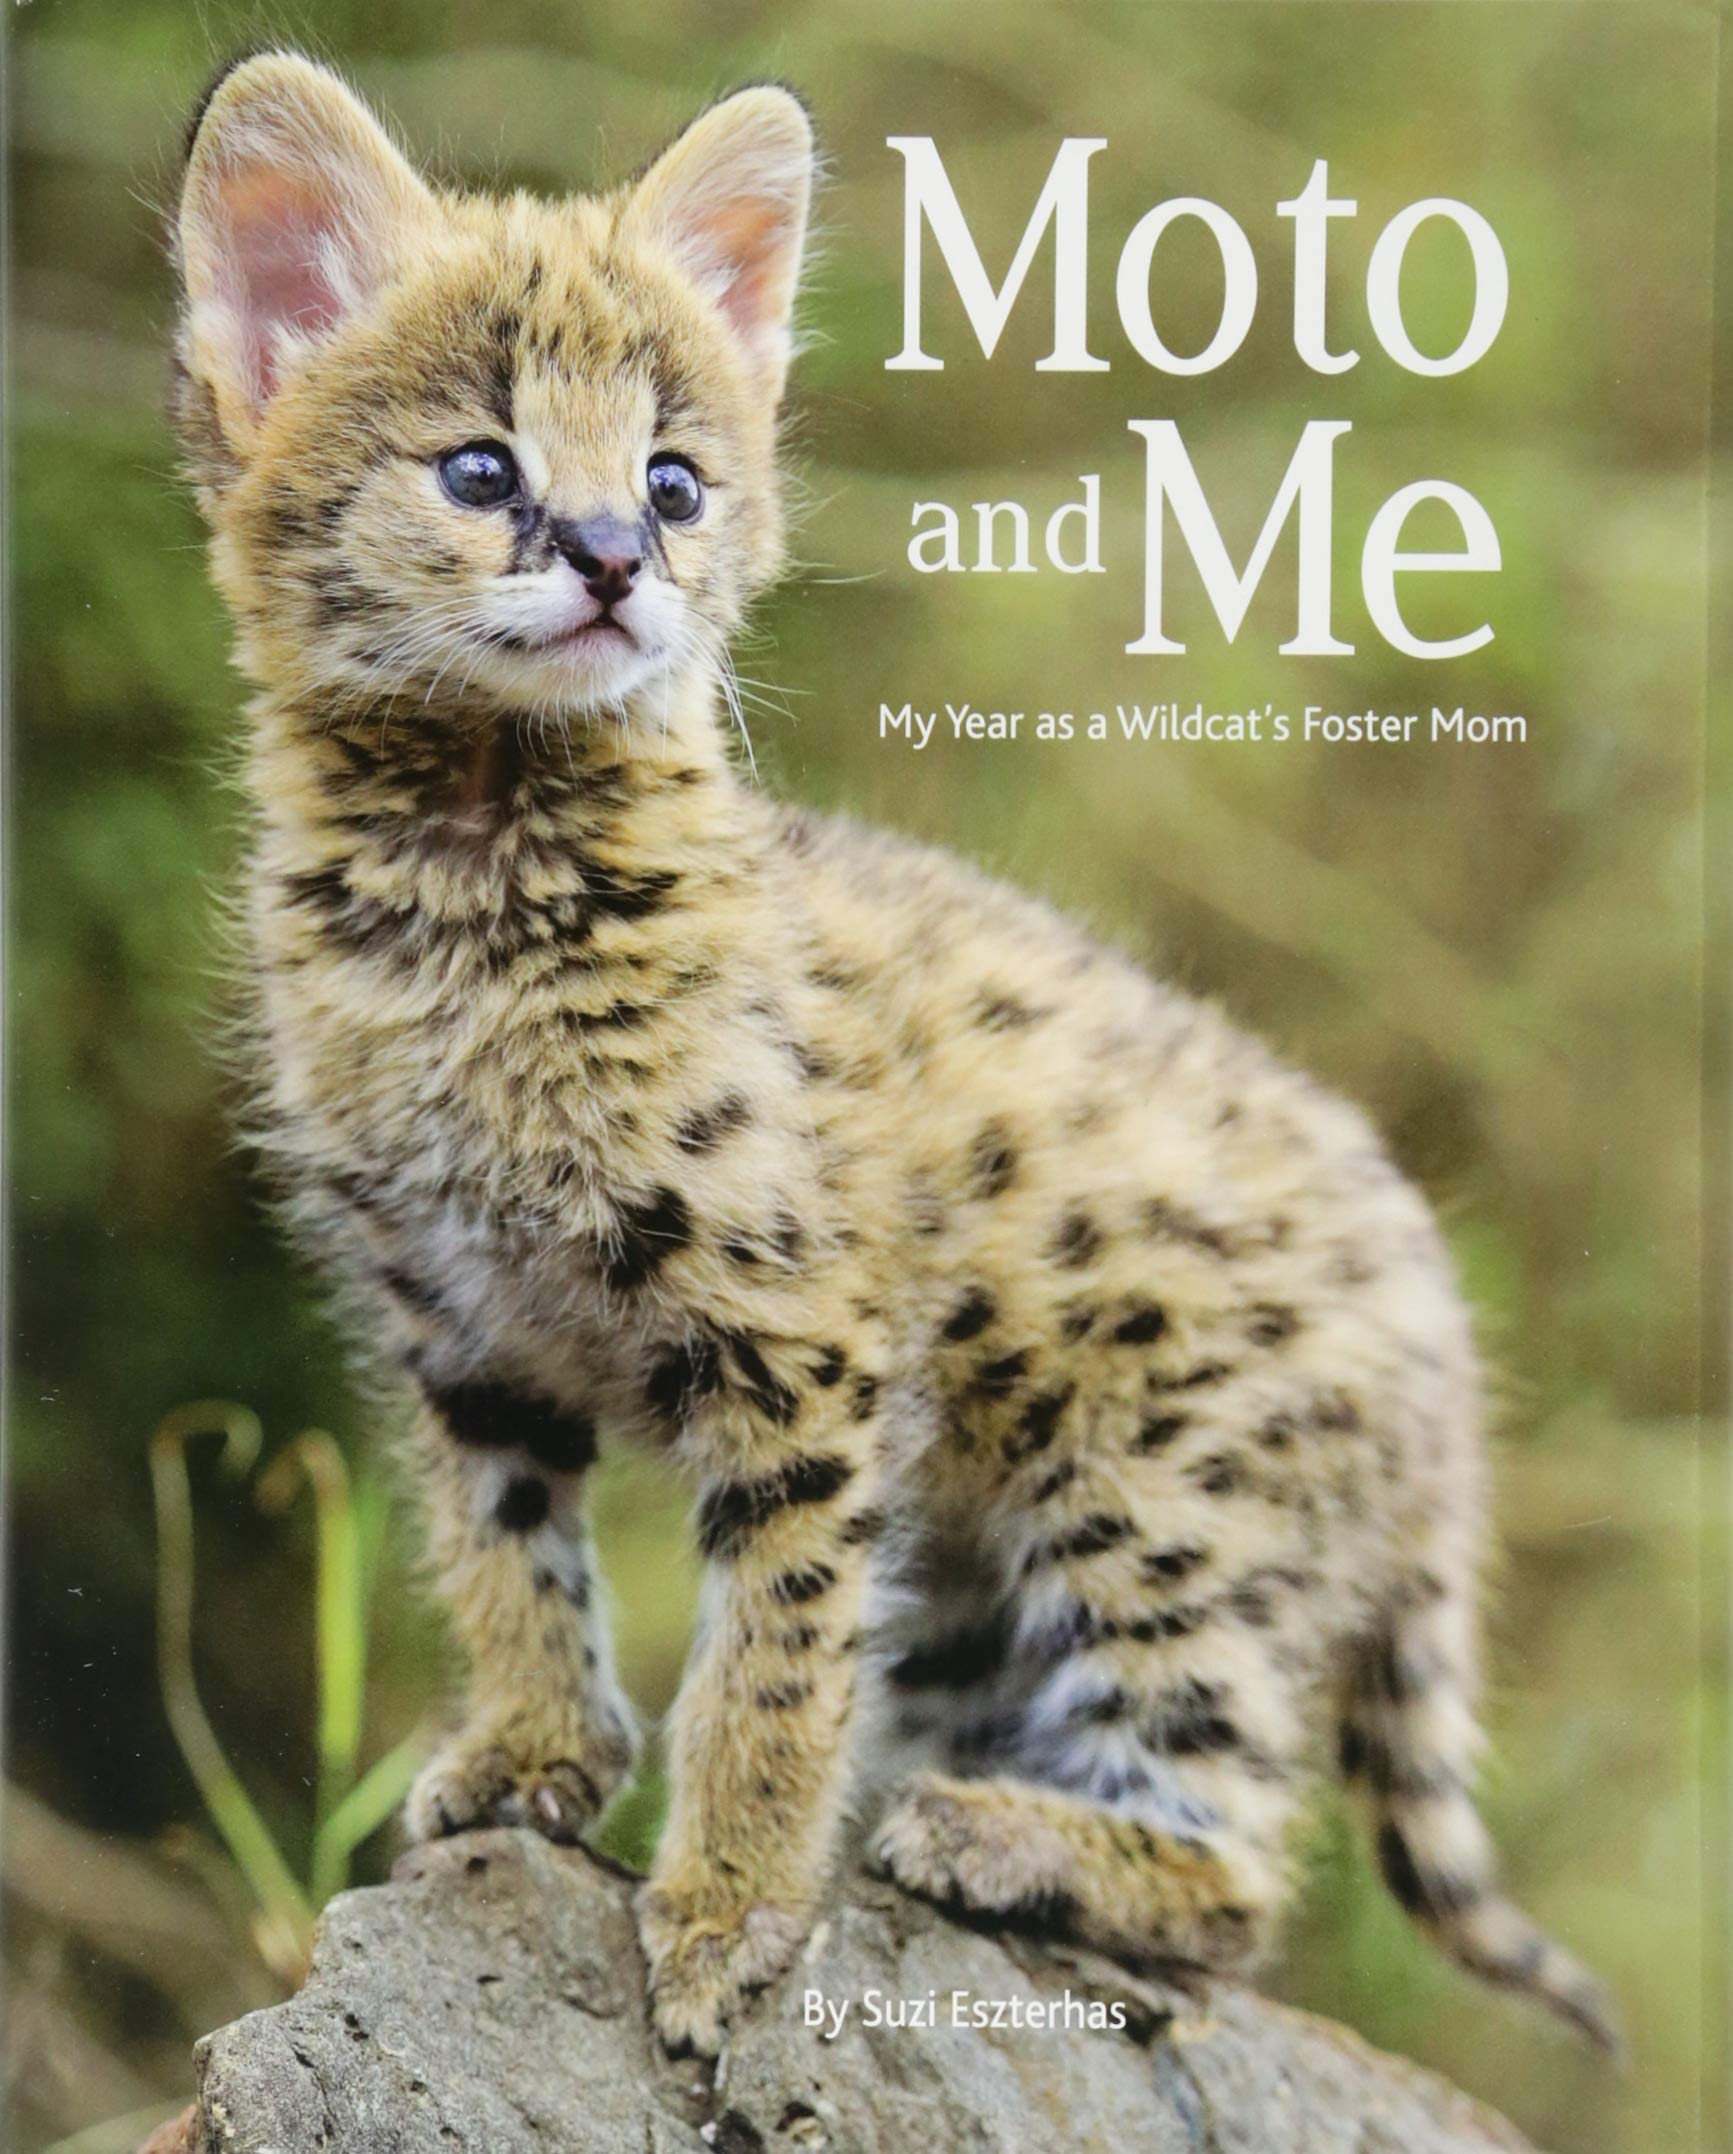 Moto and Me book cover